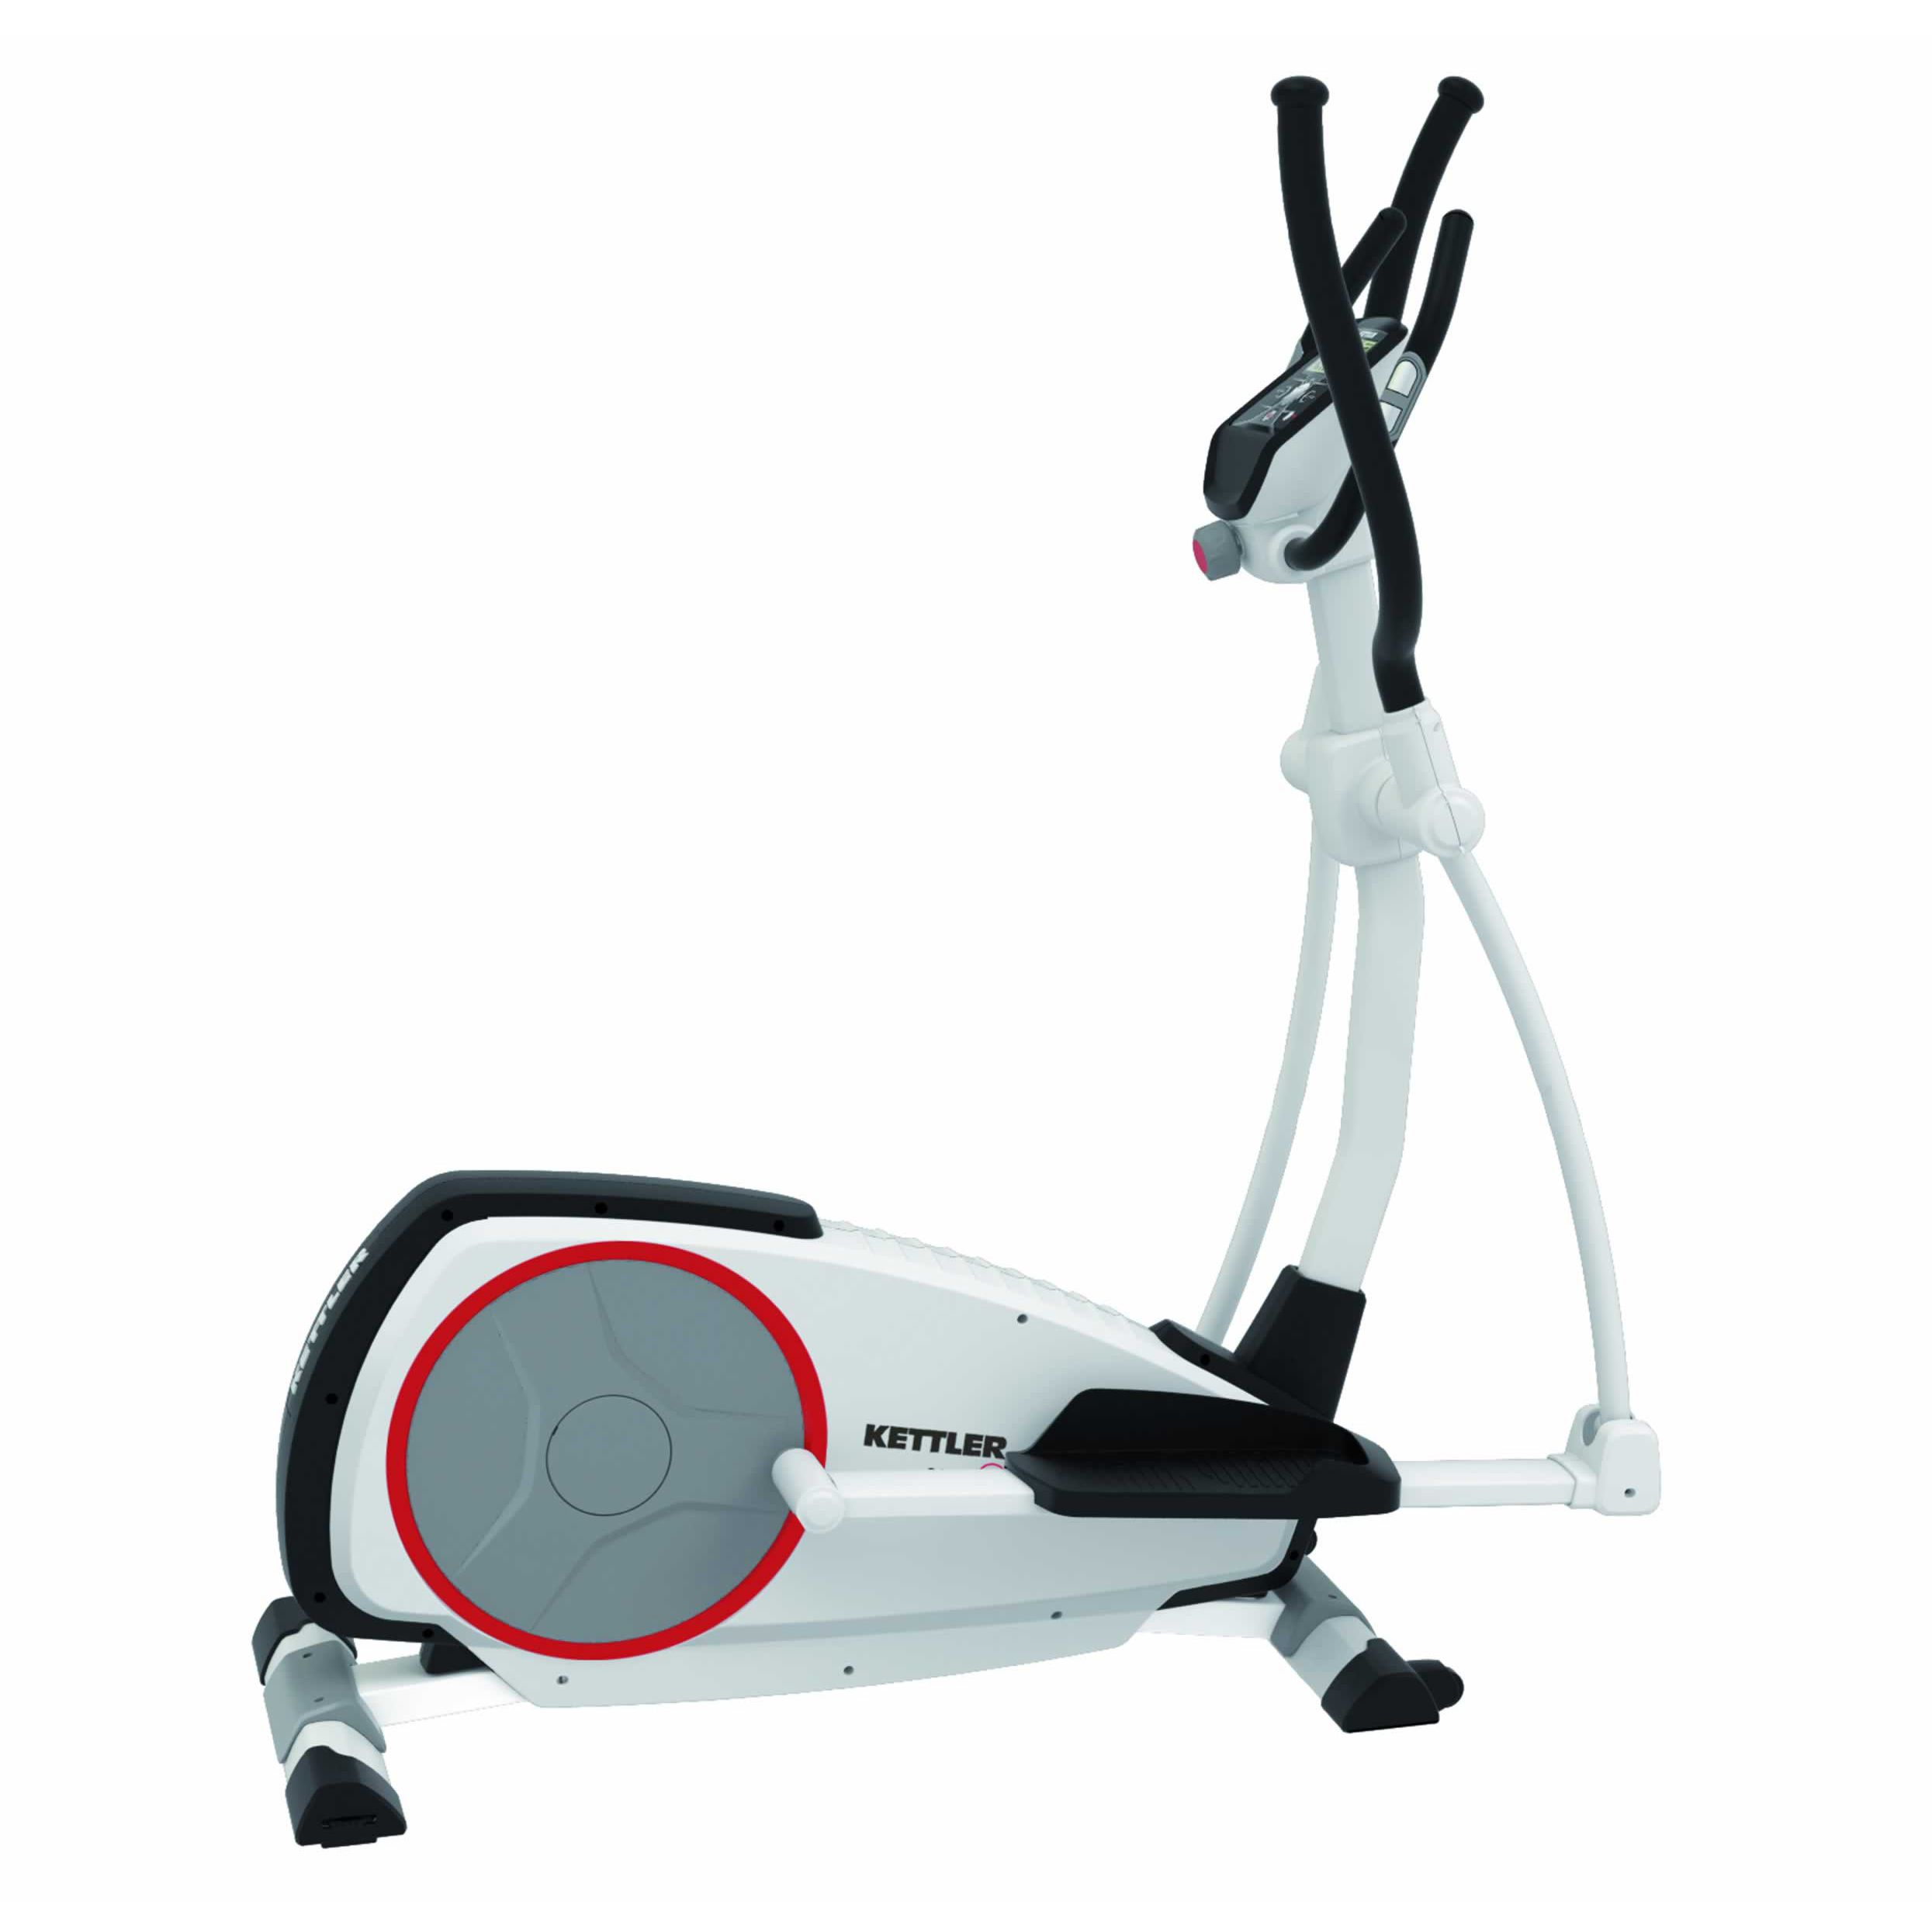 Kettler Fitness Kettler Rivo P Advantage Cross Trainer Zadoo